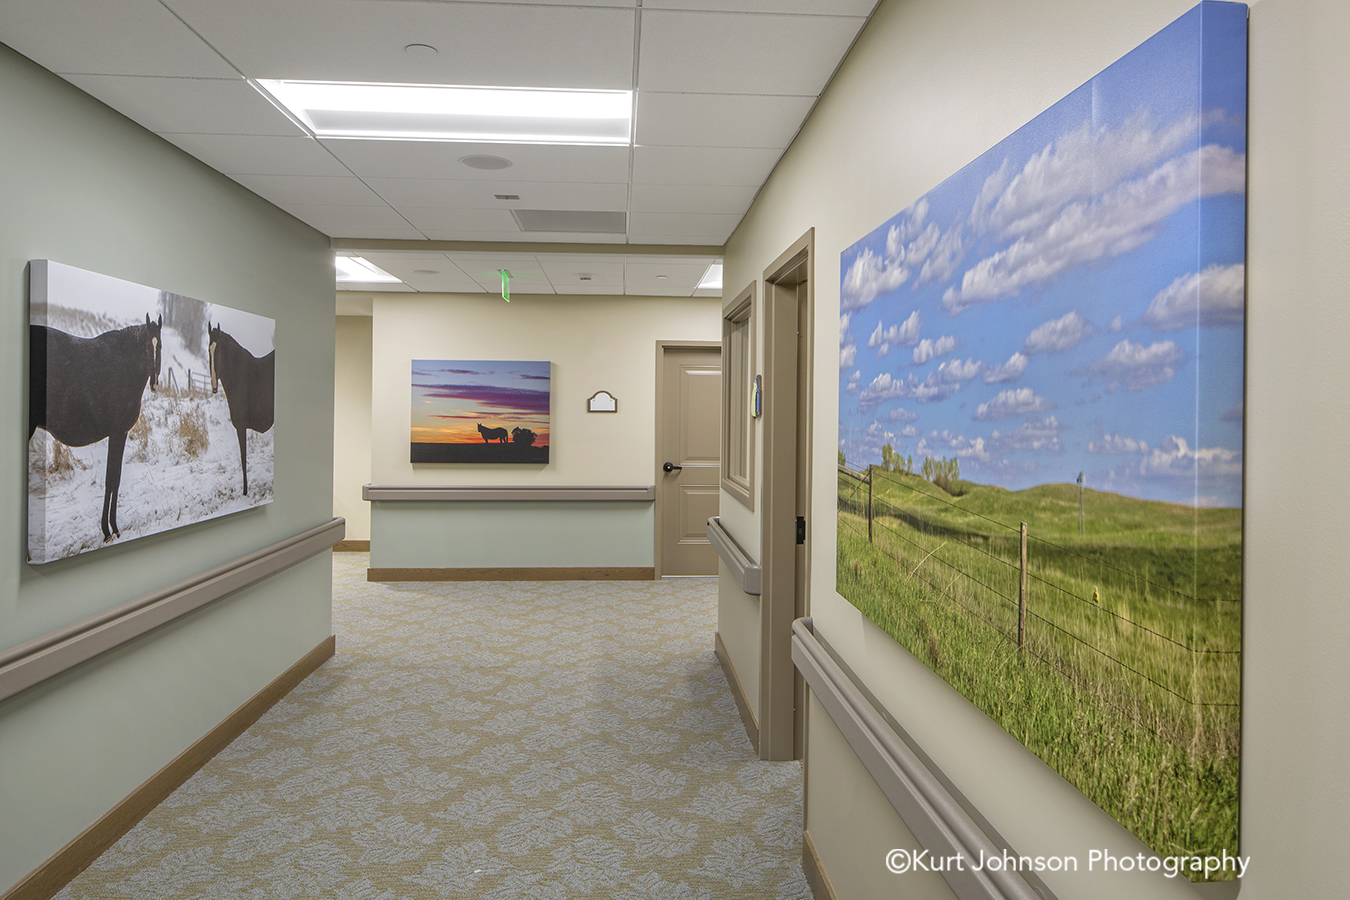 Broken Bow senior living installation fine art photography gallery wrapped canvas install midwest wildlife